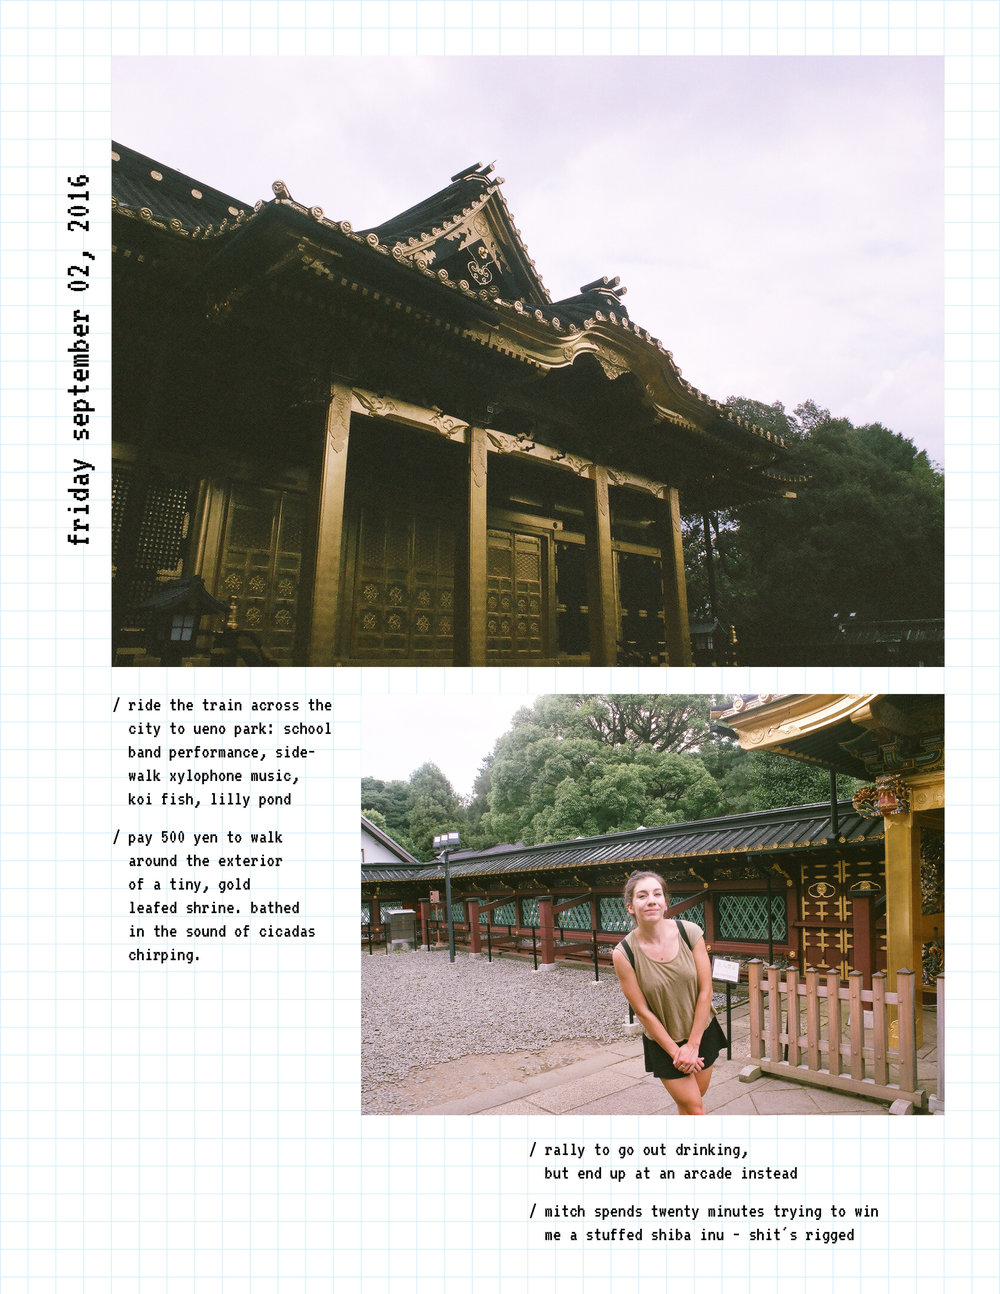 Journal_2016_Travel_Japan3.jpg